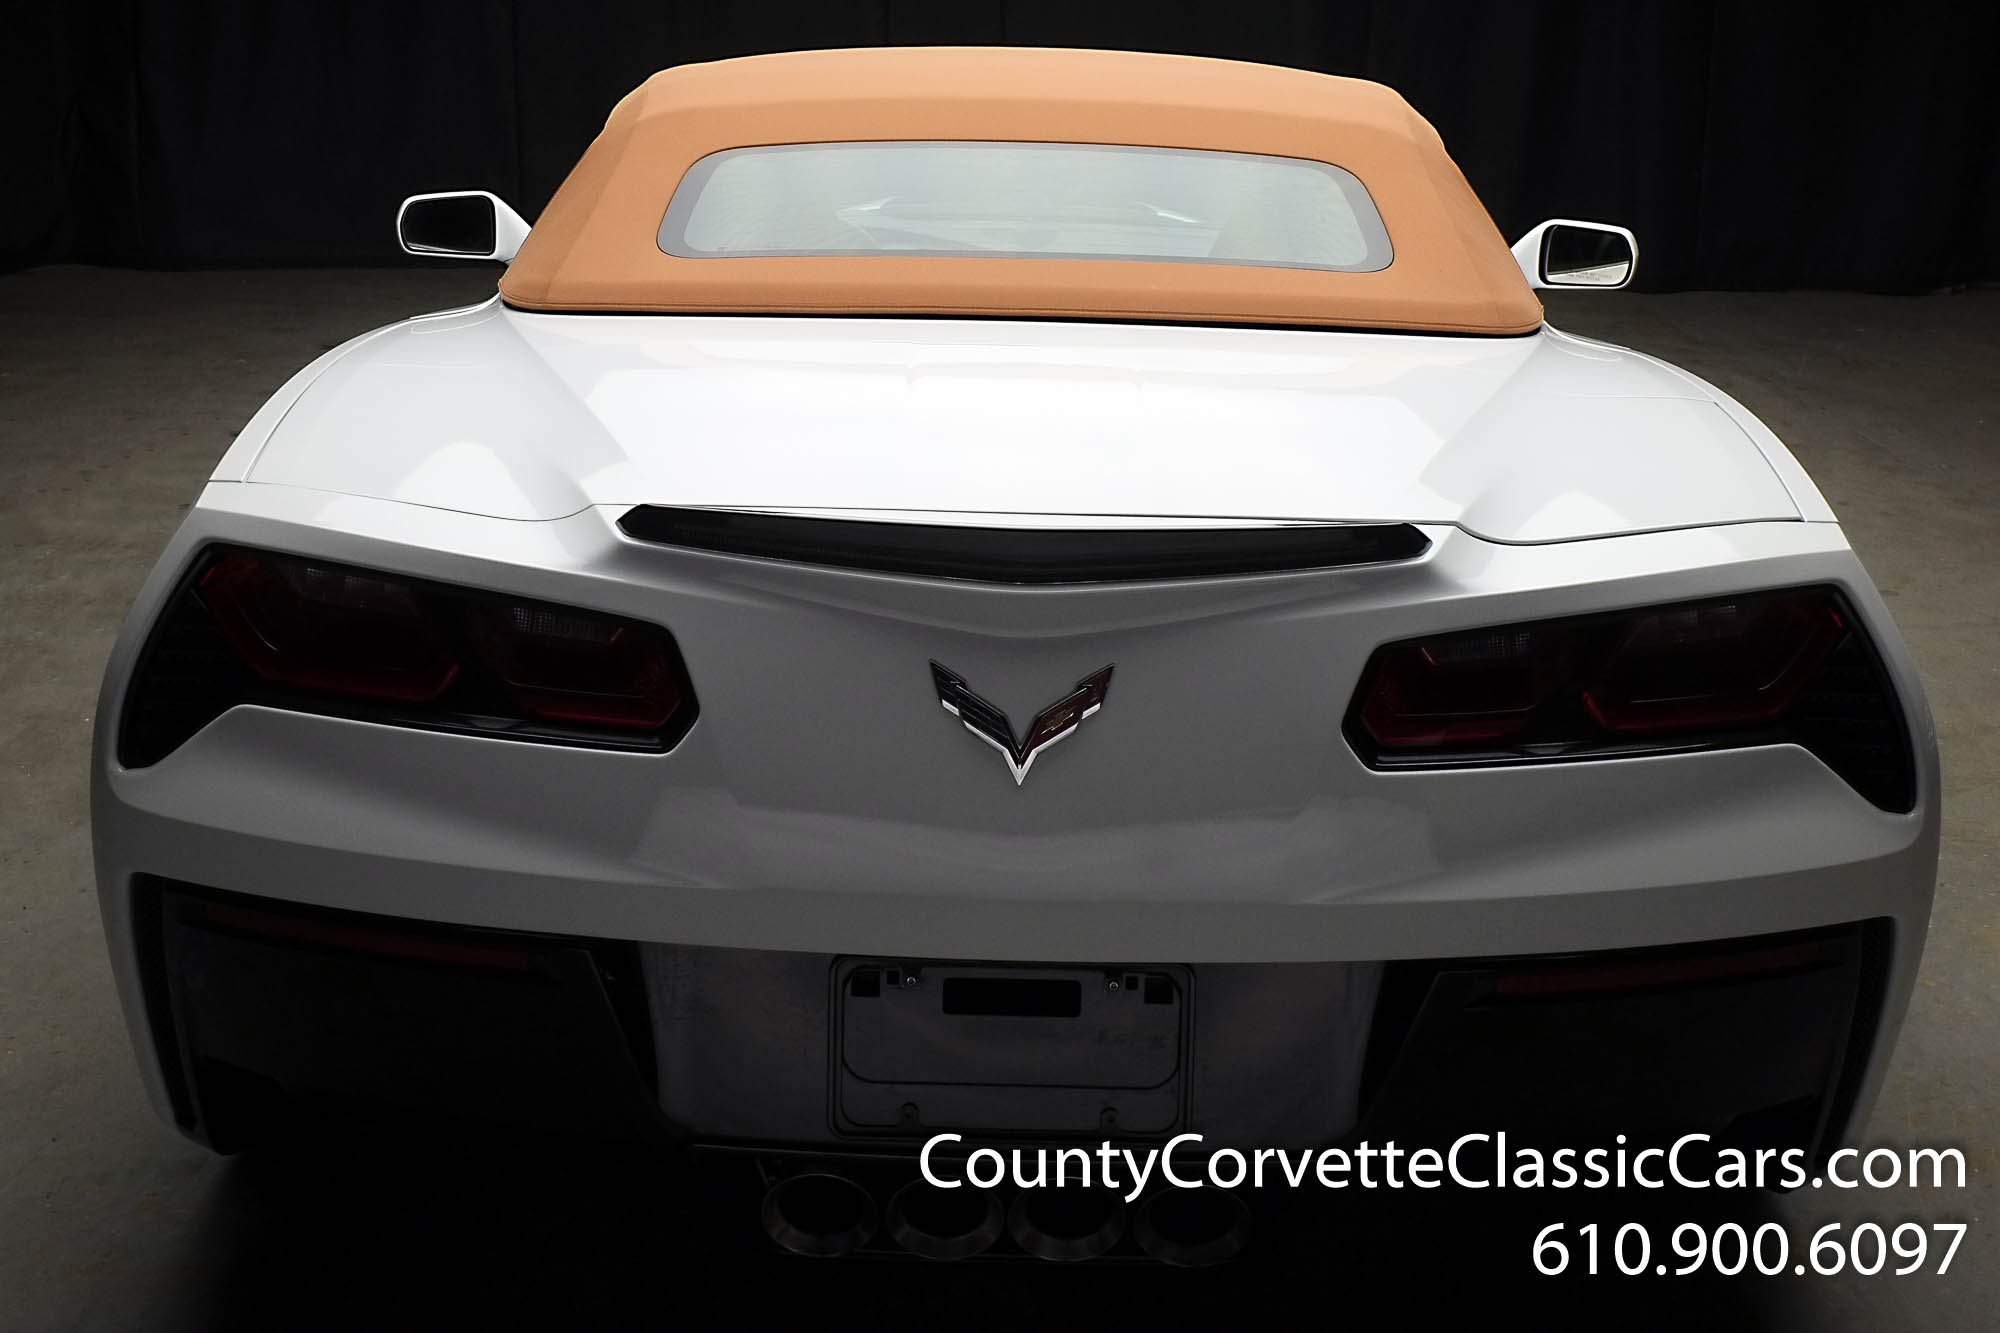 2014-Corvette-Stingray-Convertible-27.jpg